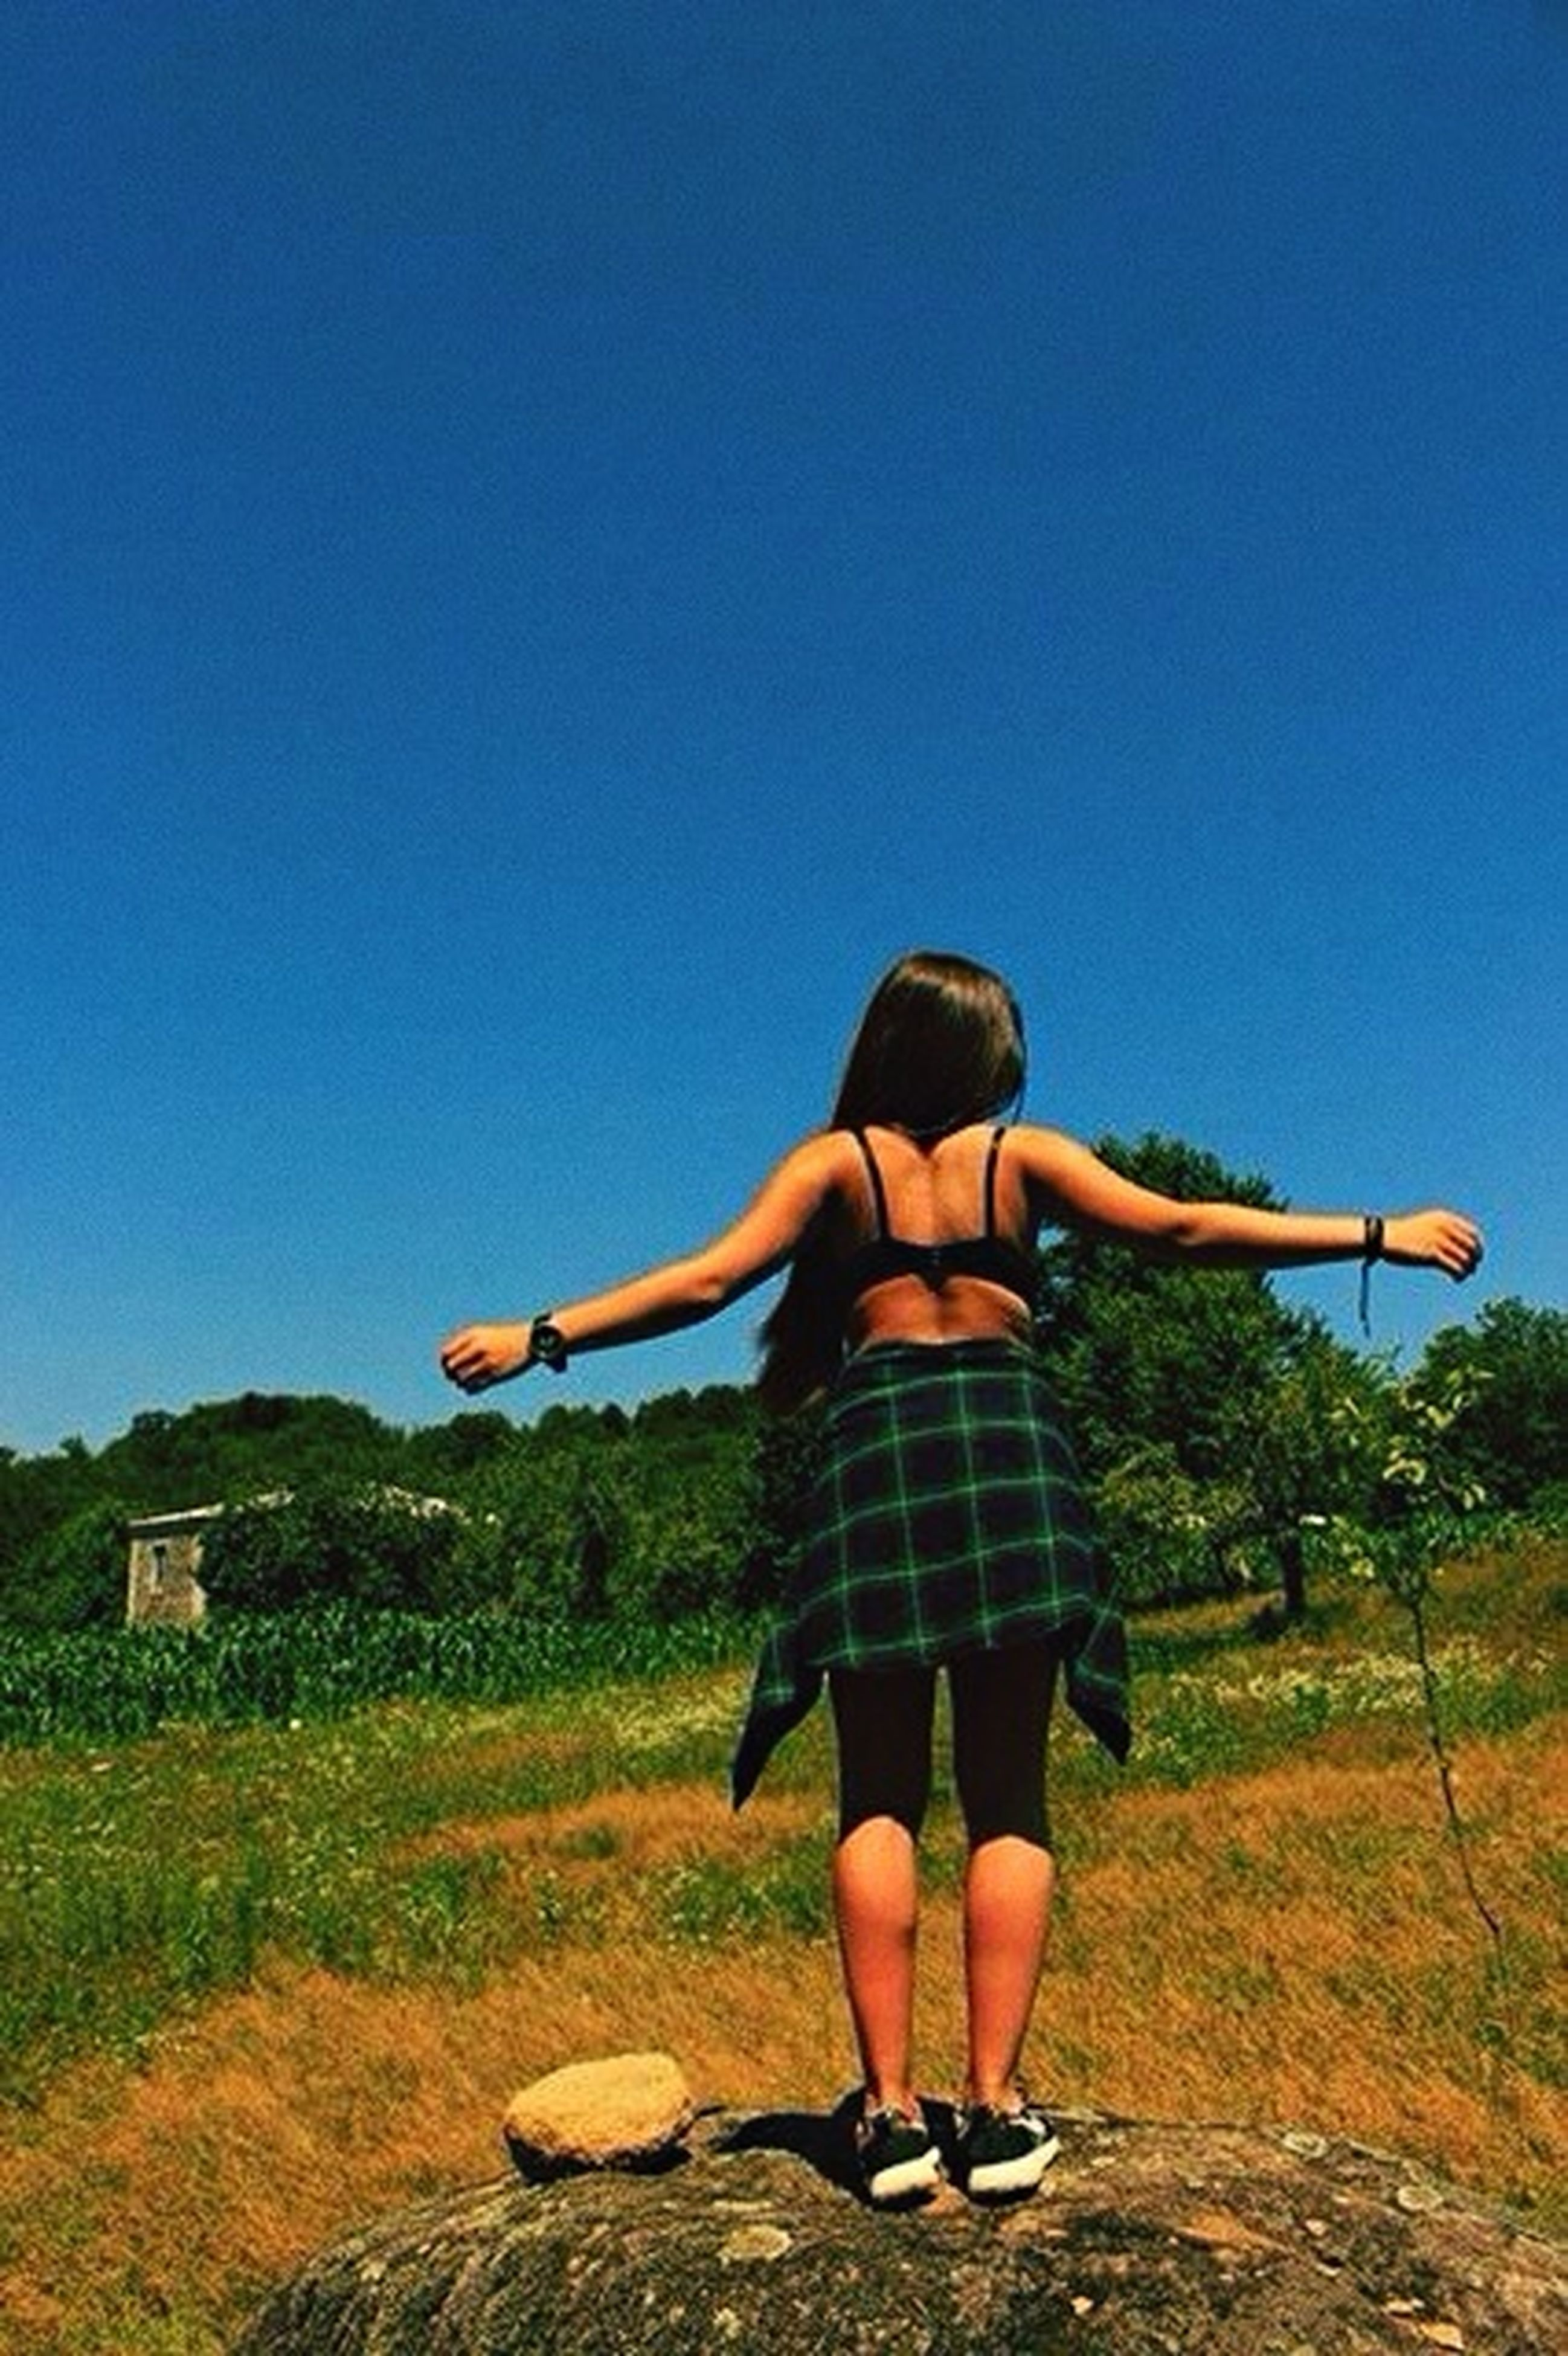 full length, lifestyles, leisure activity, clear sky, casual clothing, copy space, young adult, mid-air, rear view, arms outstretched, jumping, grass, side view, sunlight, person, carefree, standing, young women